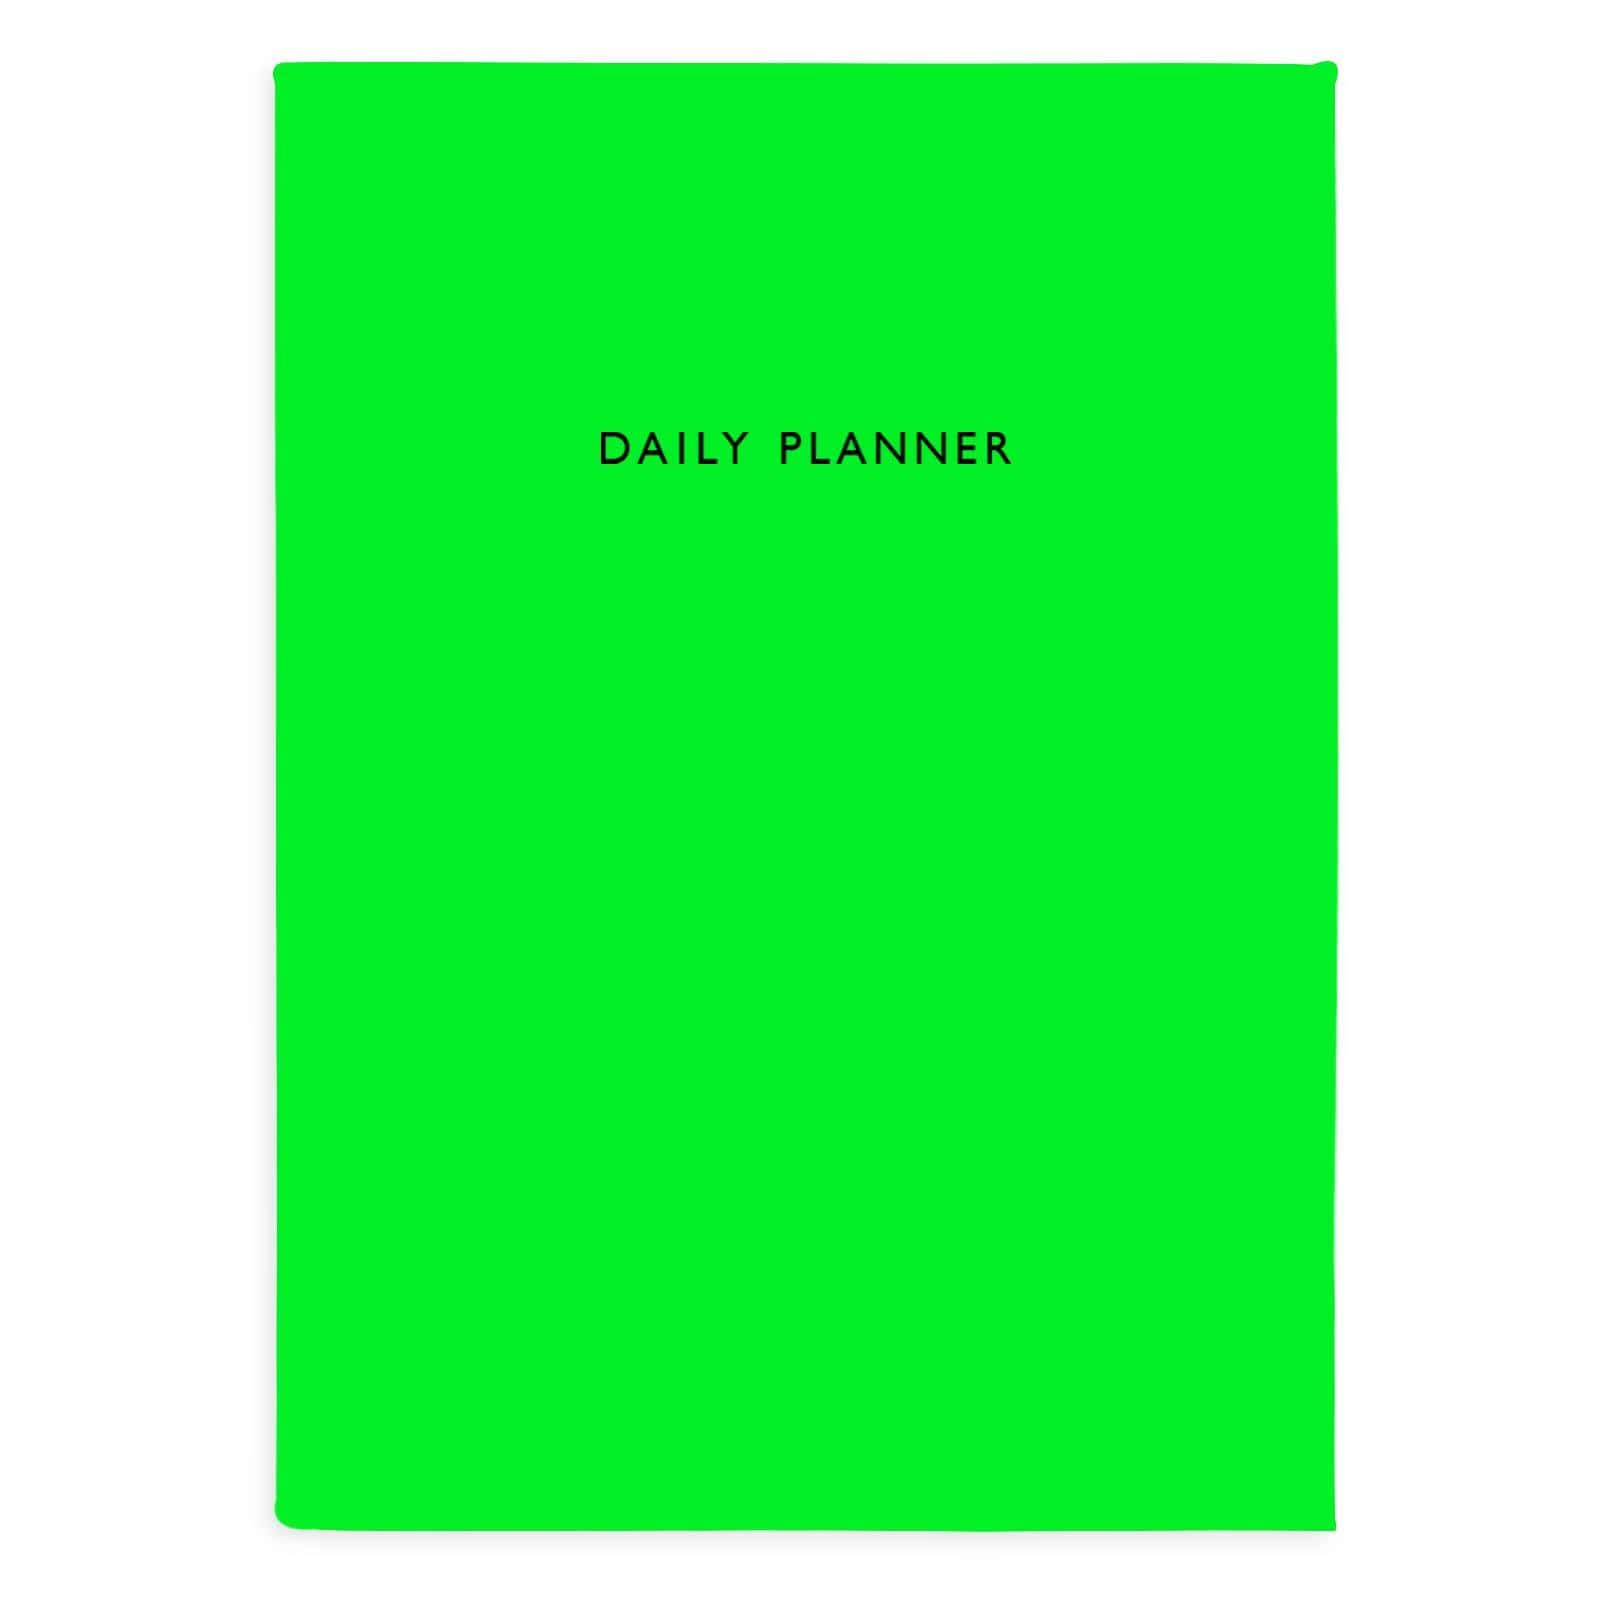 OUTLET Neon Green Daily Planner